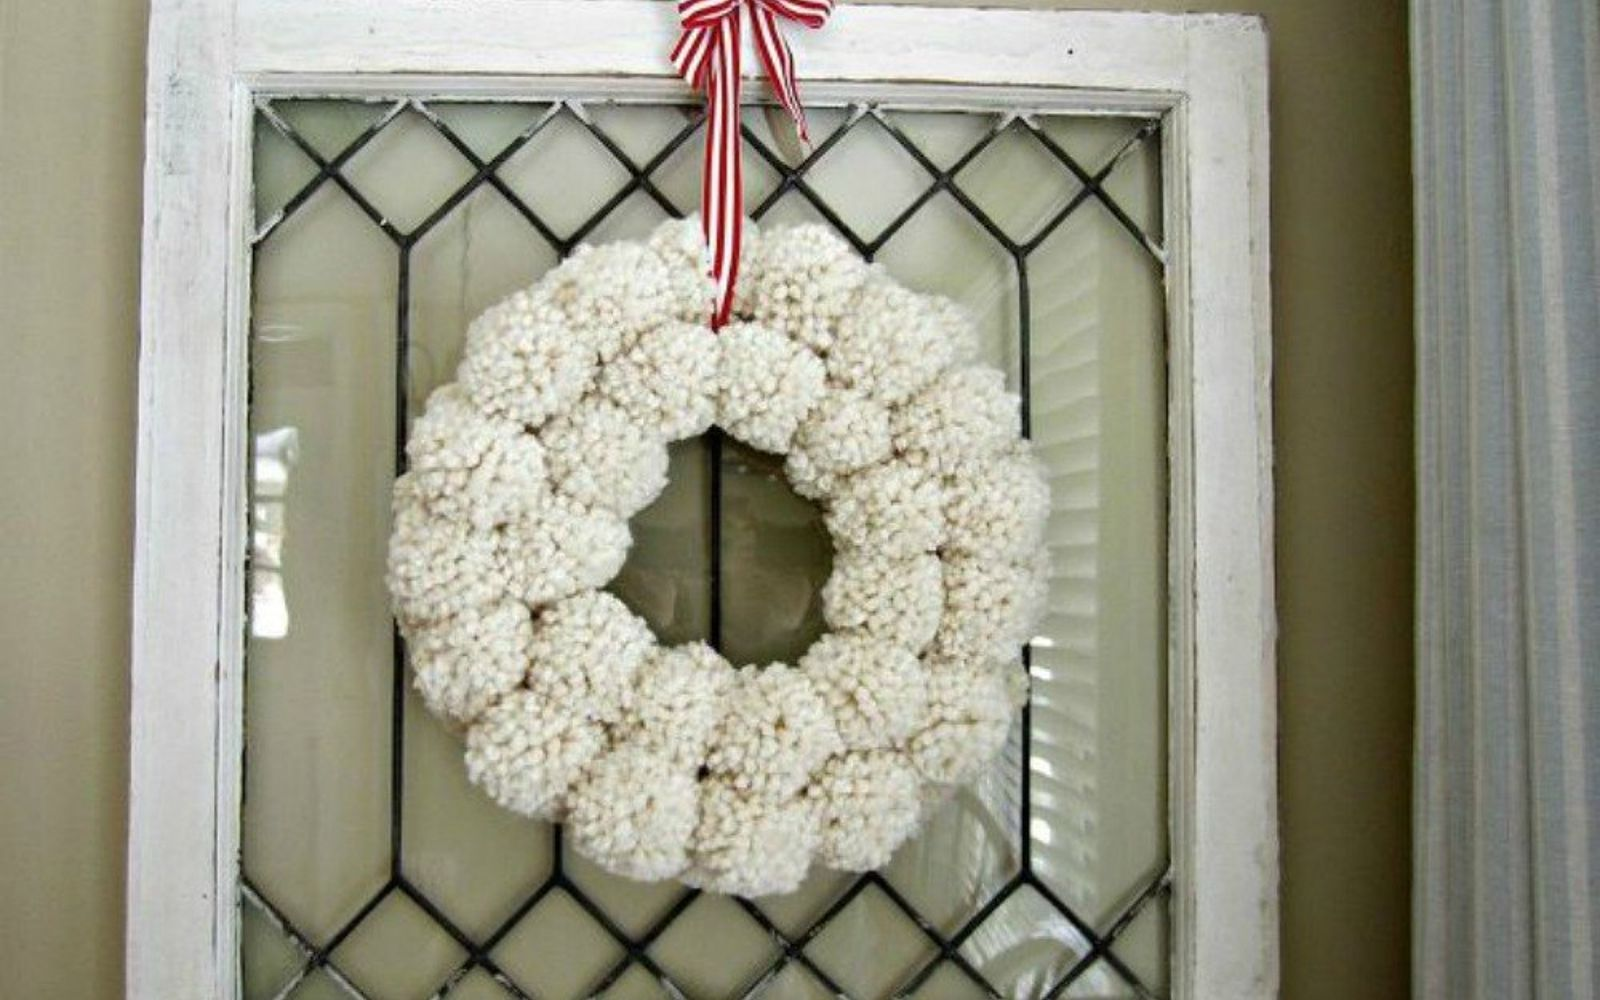 s 16 affordable ways to warm up your home this winter, home decor, Make an Anthro inspired pom pom wreath